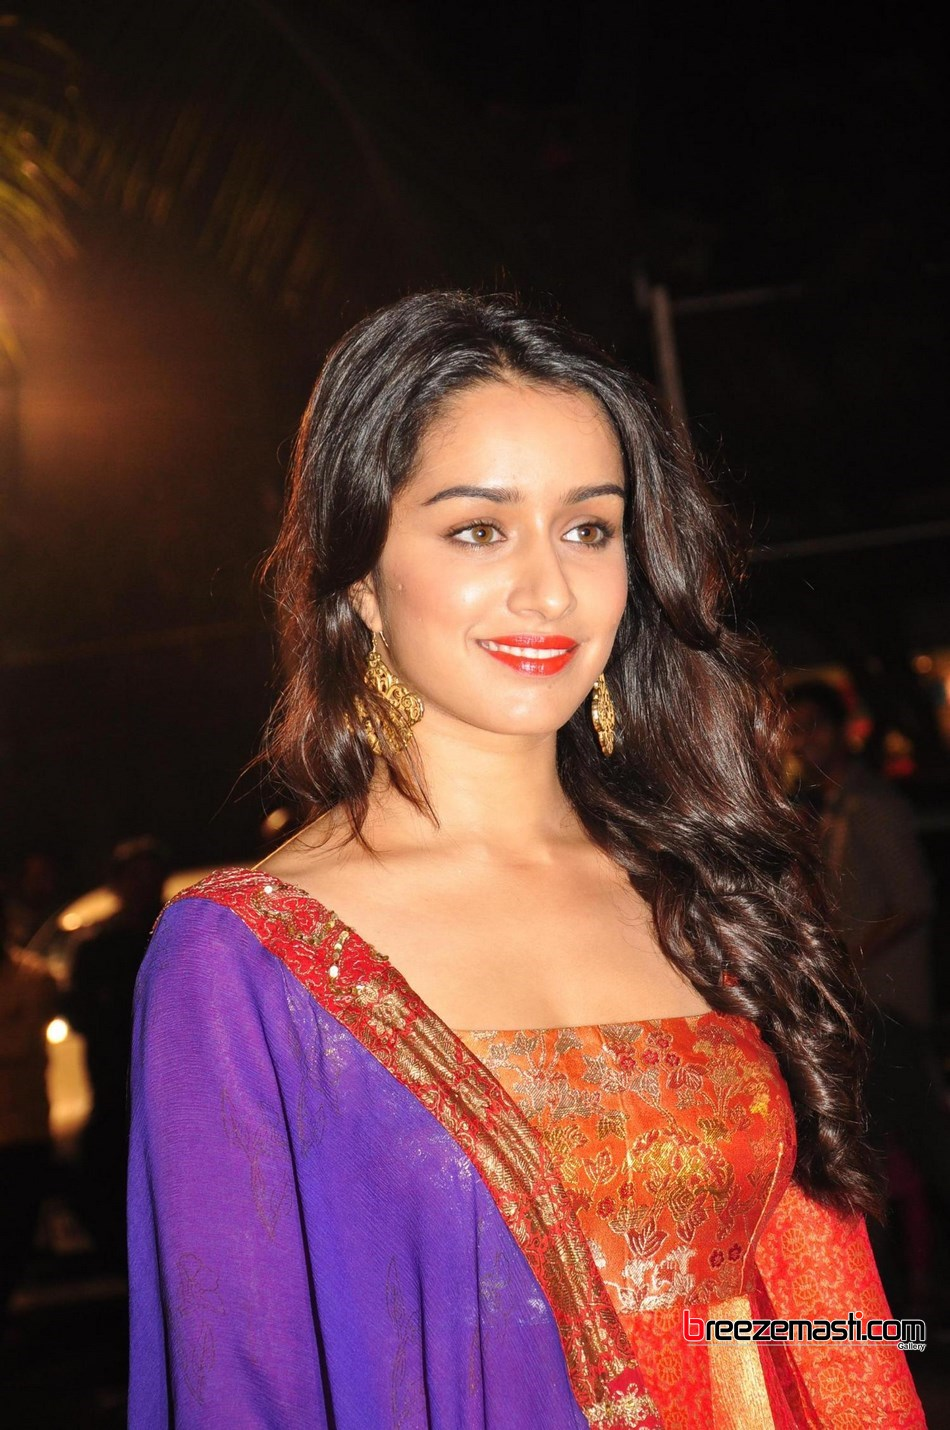 Indian Celebs Gallery